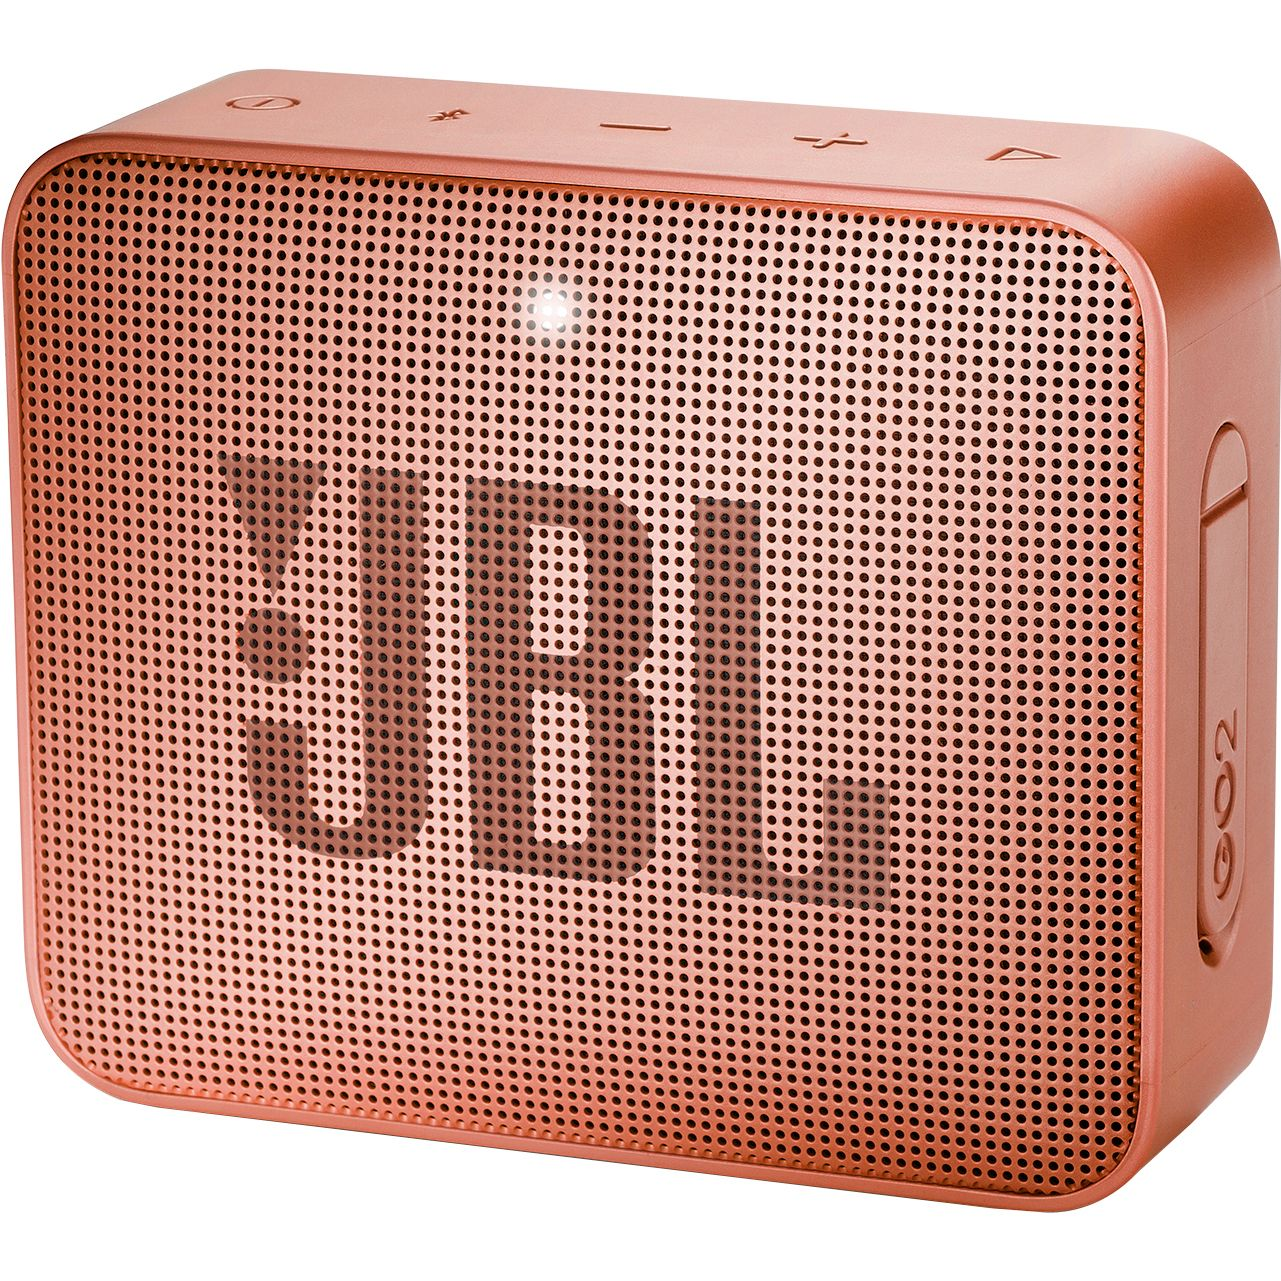 Boxa portabila JBL Go 2, Wireless, Bluetooth, IPX7 Waterproof, Sunkissed Cinnamon